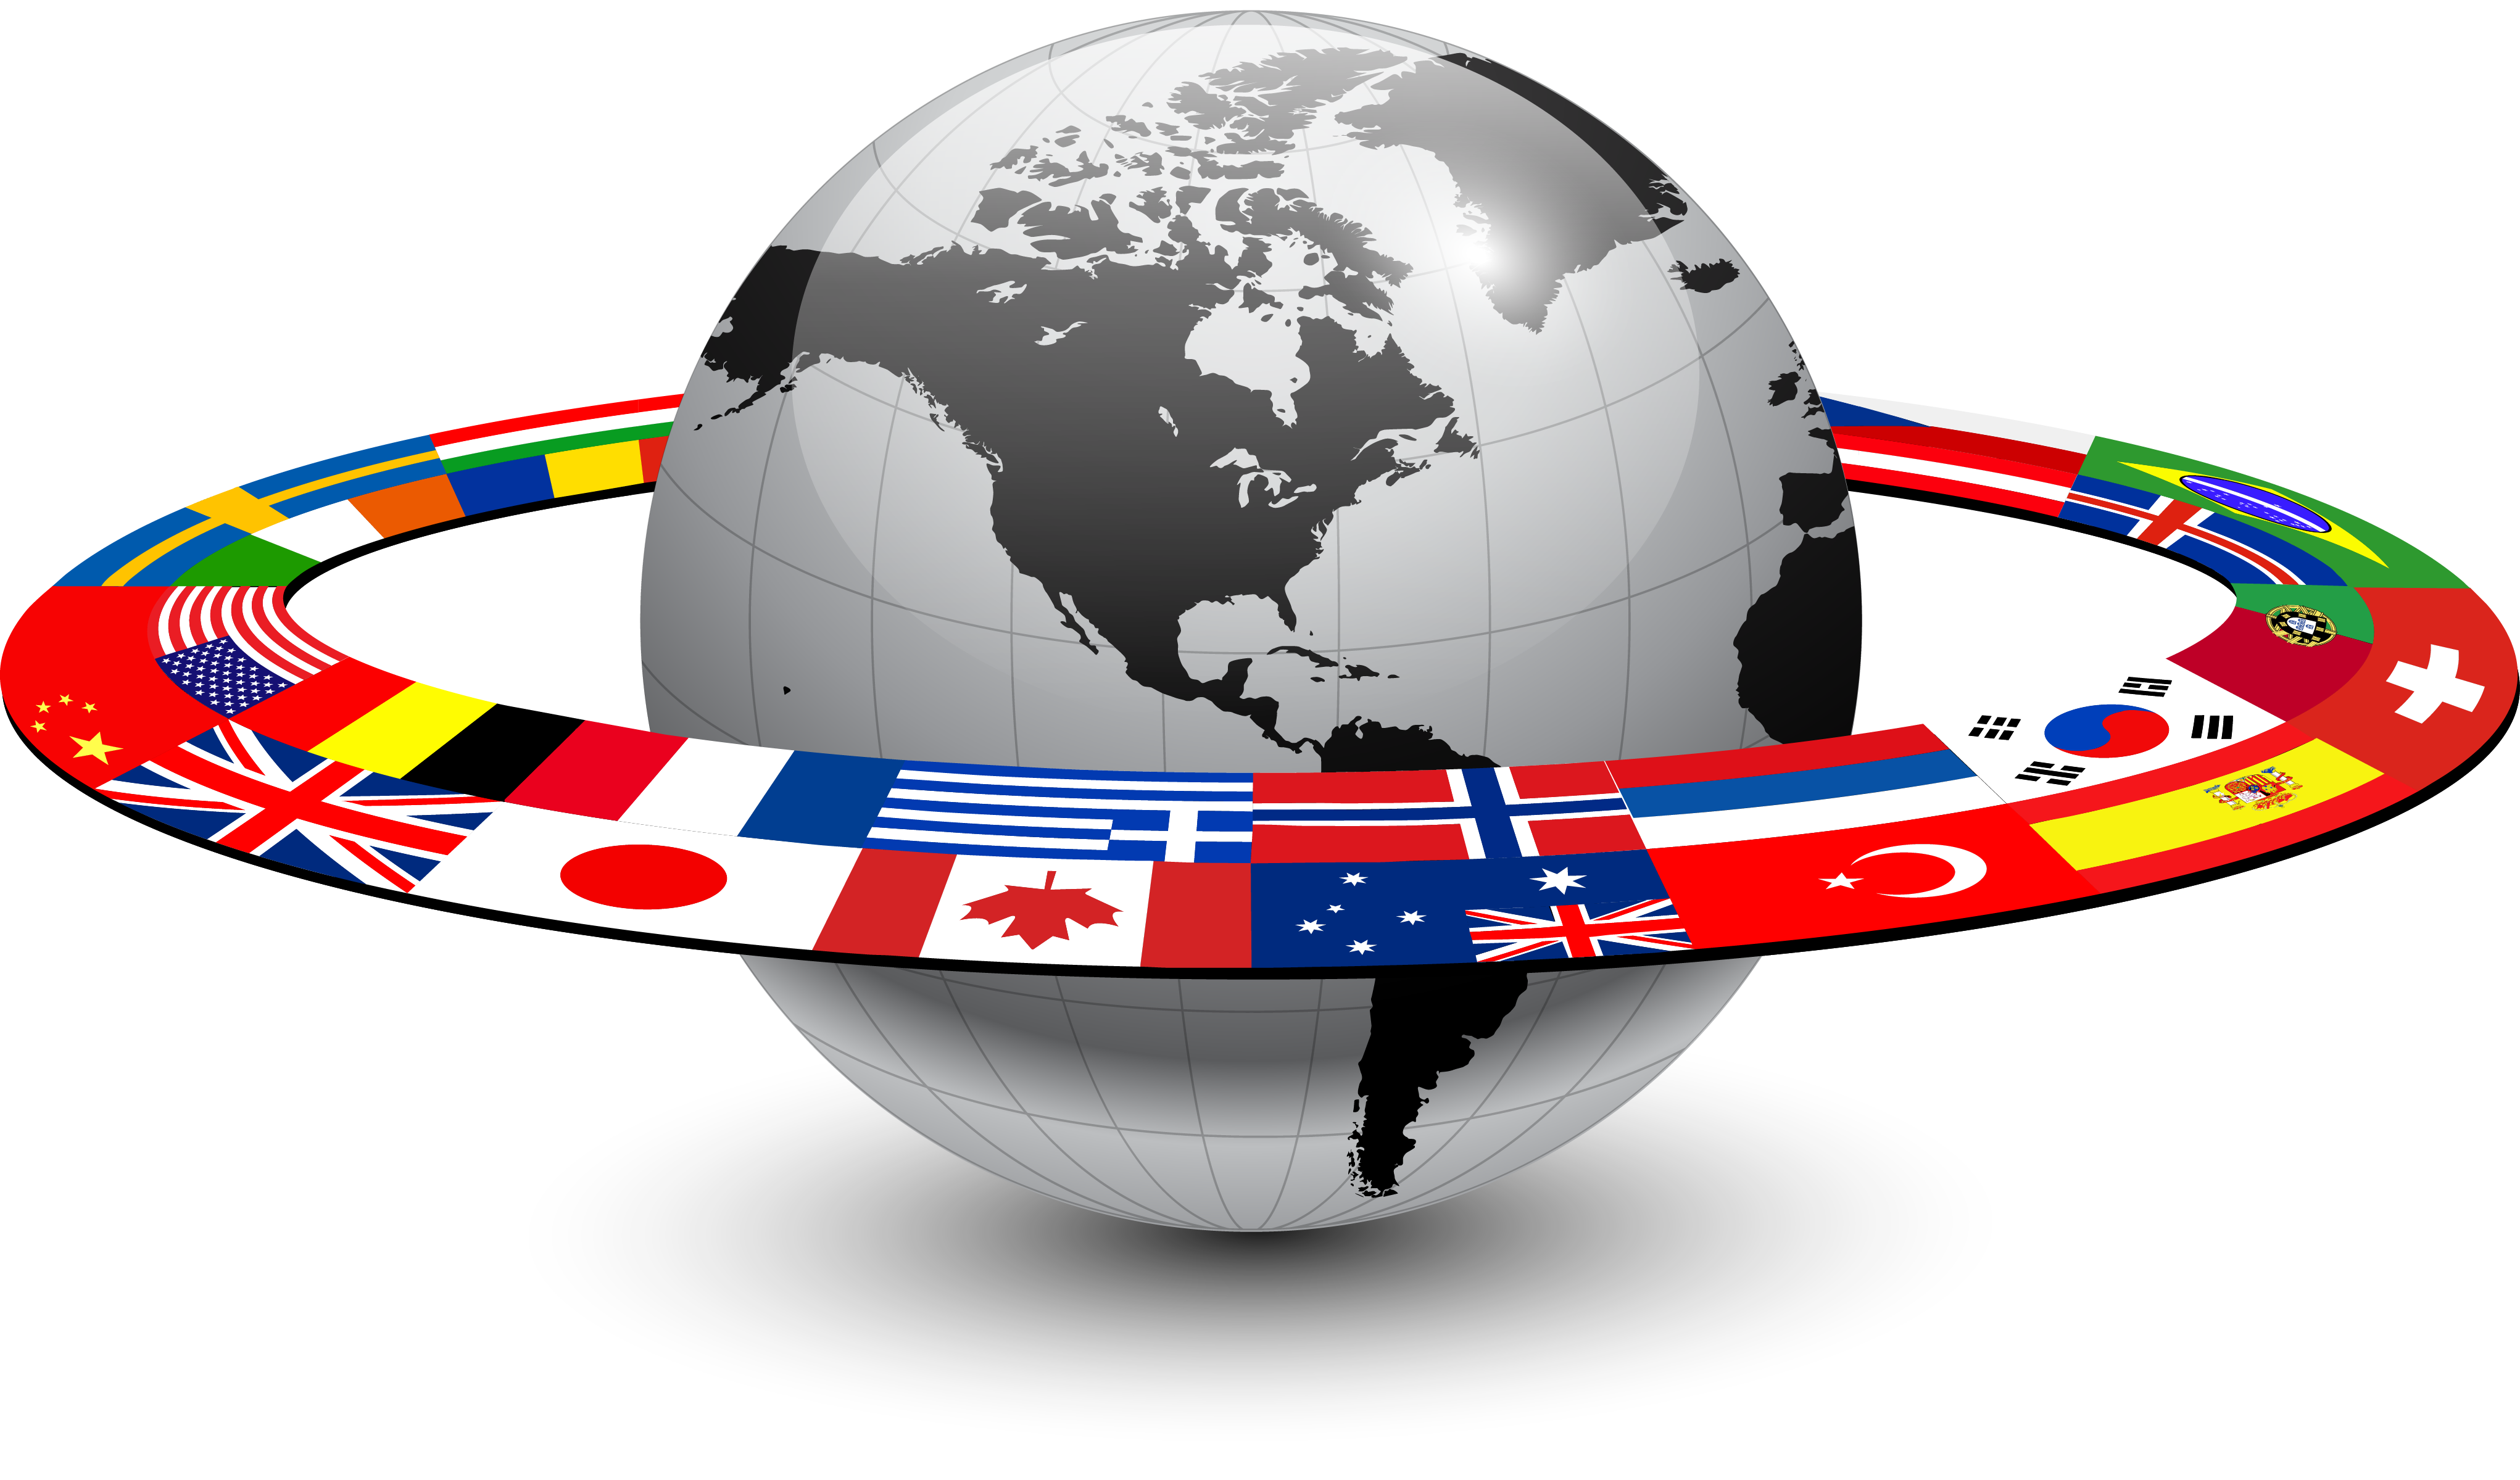 A globe with flags of countries around it